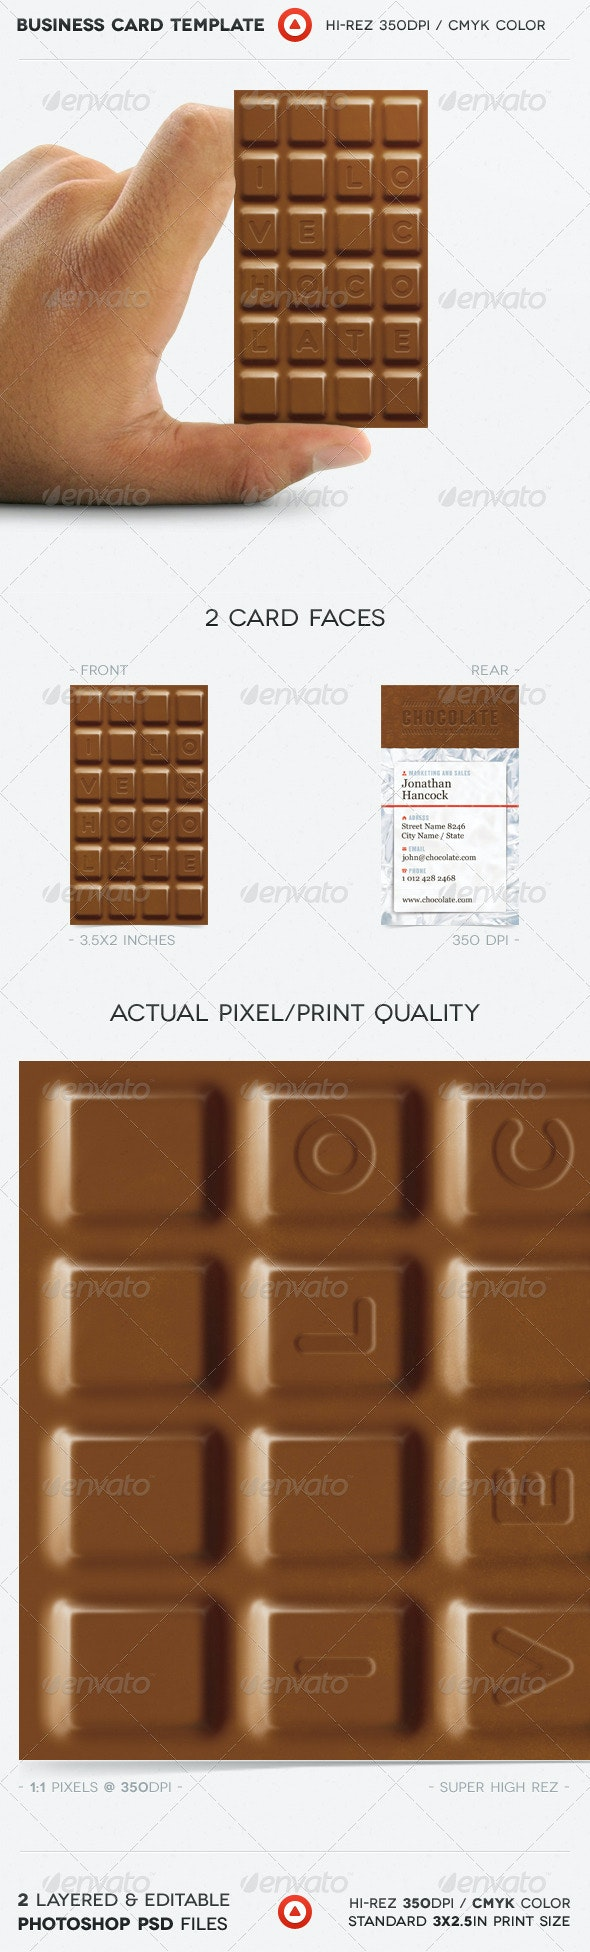 Chocolate Business Card - Real Objects Business Cards